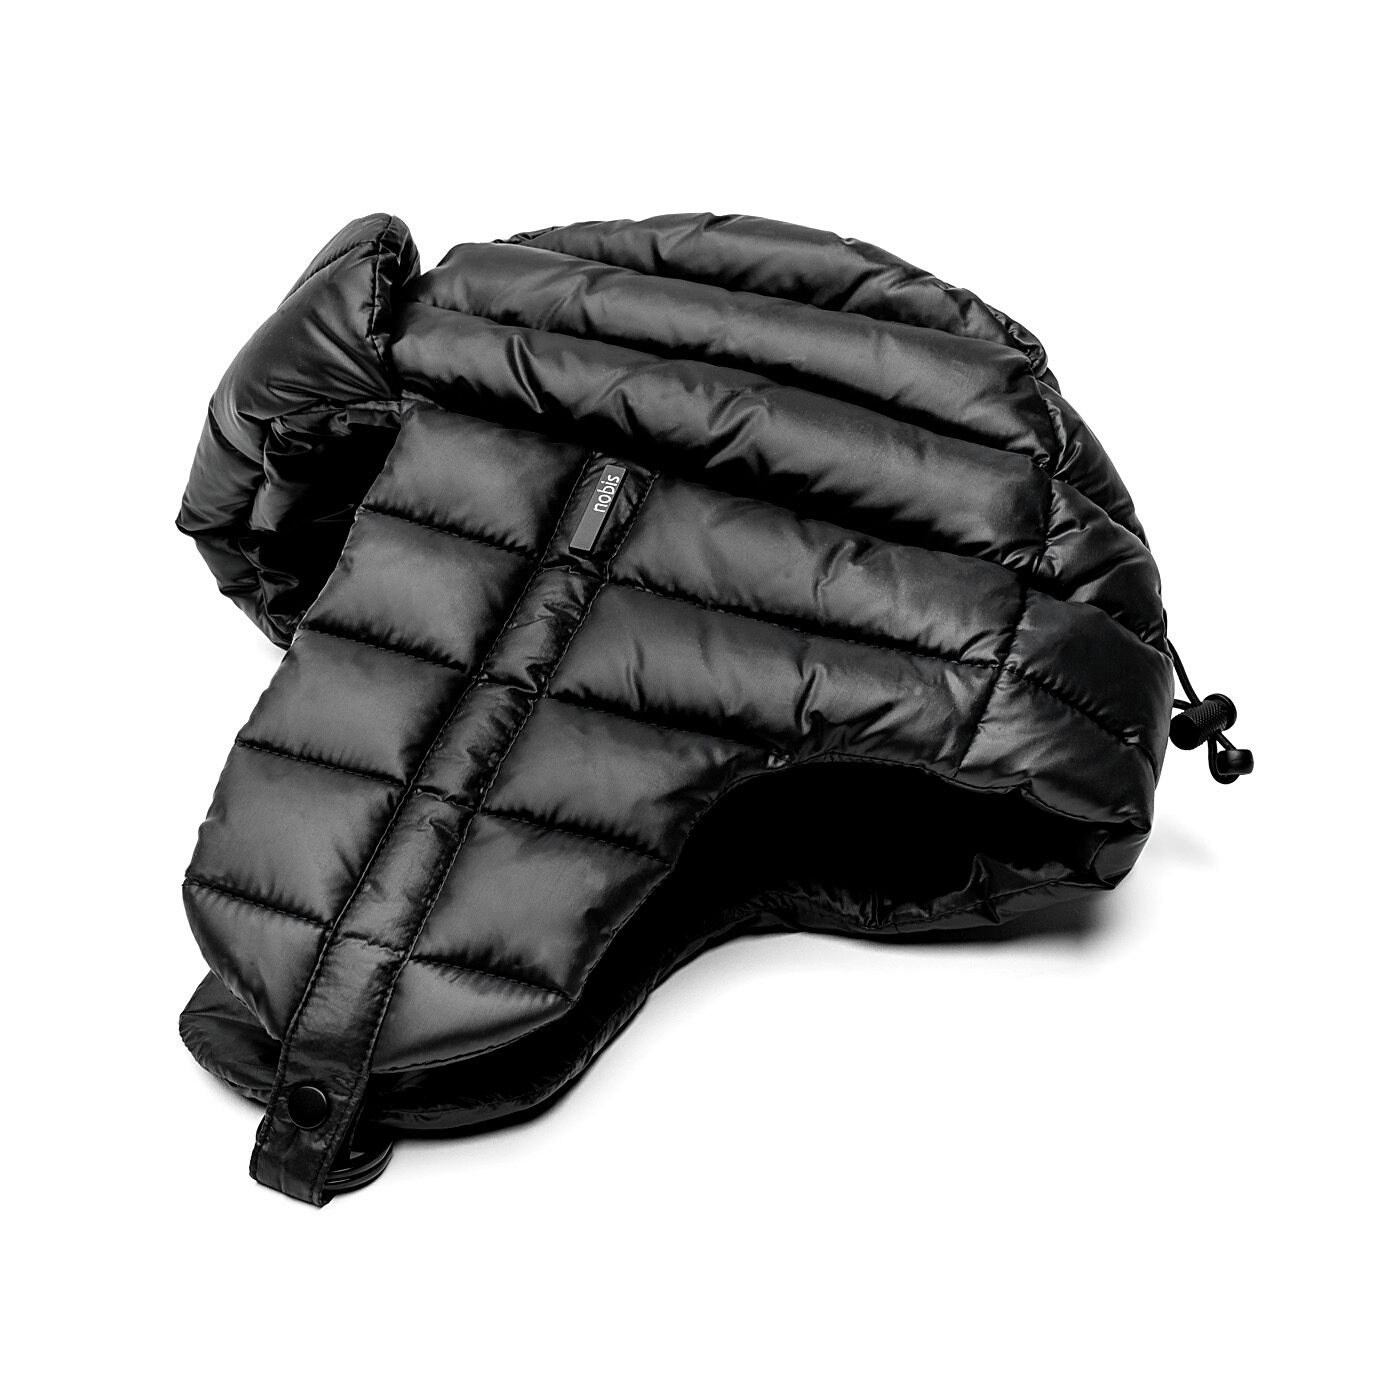 Unisex down-filled quilted fargo hat with adjustable chin strap in Black | color